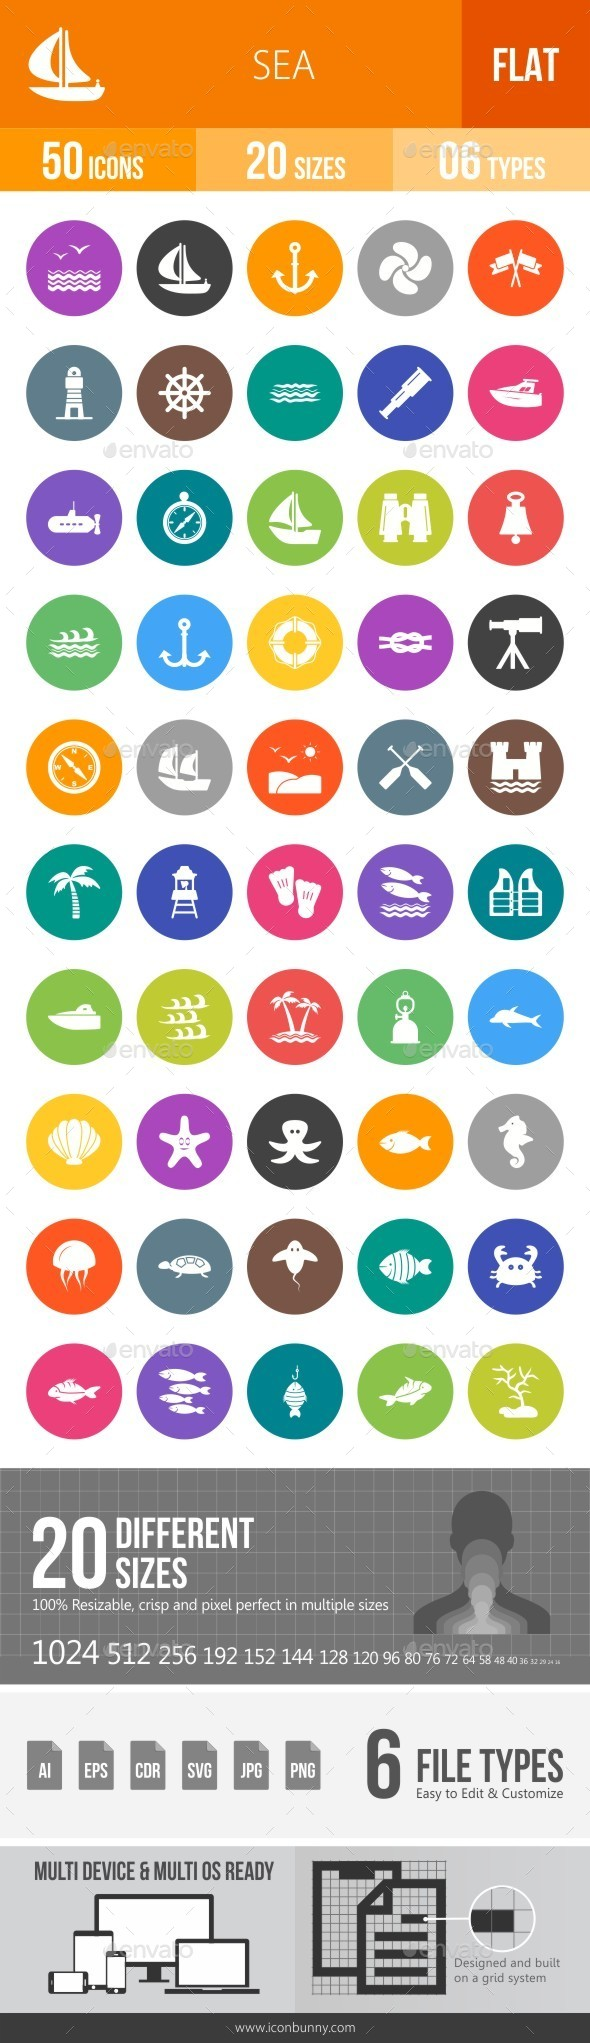 Sea Flat Round Icons - Icons